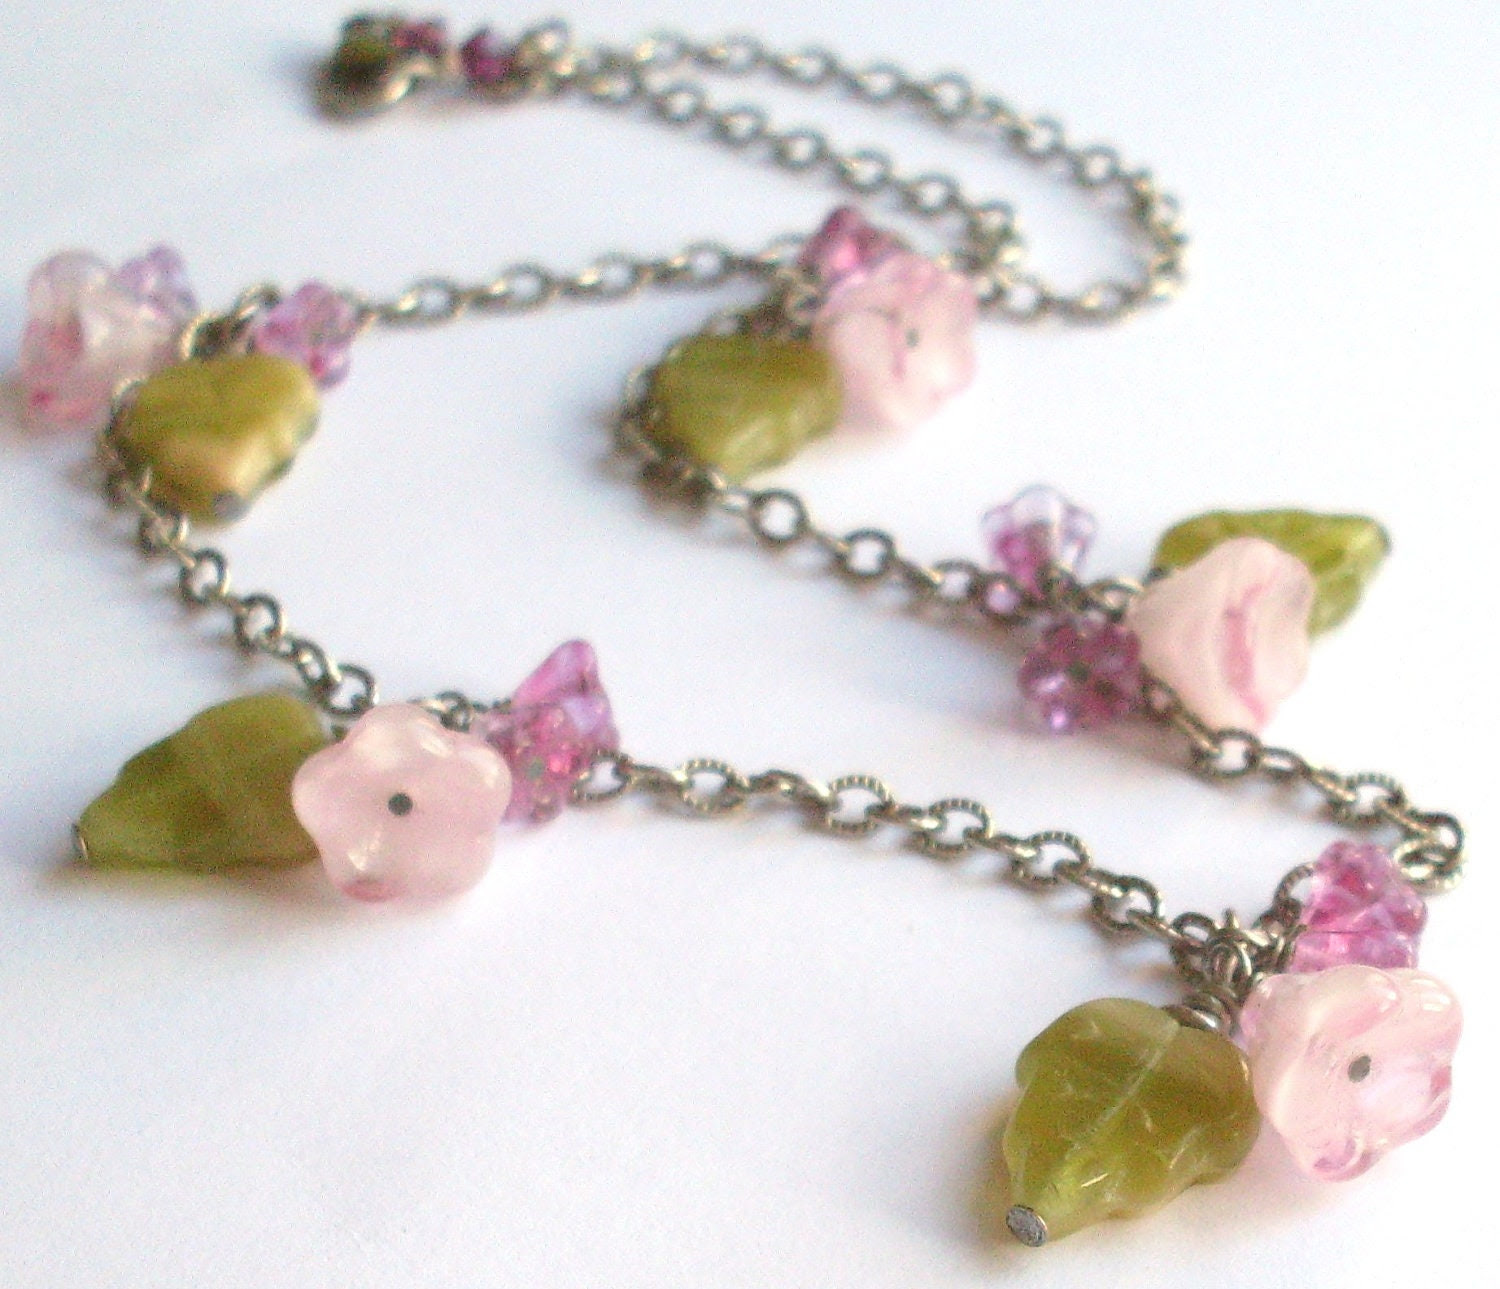 Flower leaf necklace - pink and green drop necklace. Flower bead necklace, dark silver chain. Spring blossoms flower jewelry, pink jewelry. - ArtfulTrinkets1